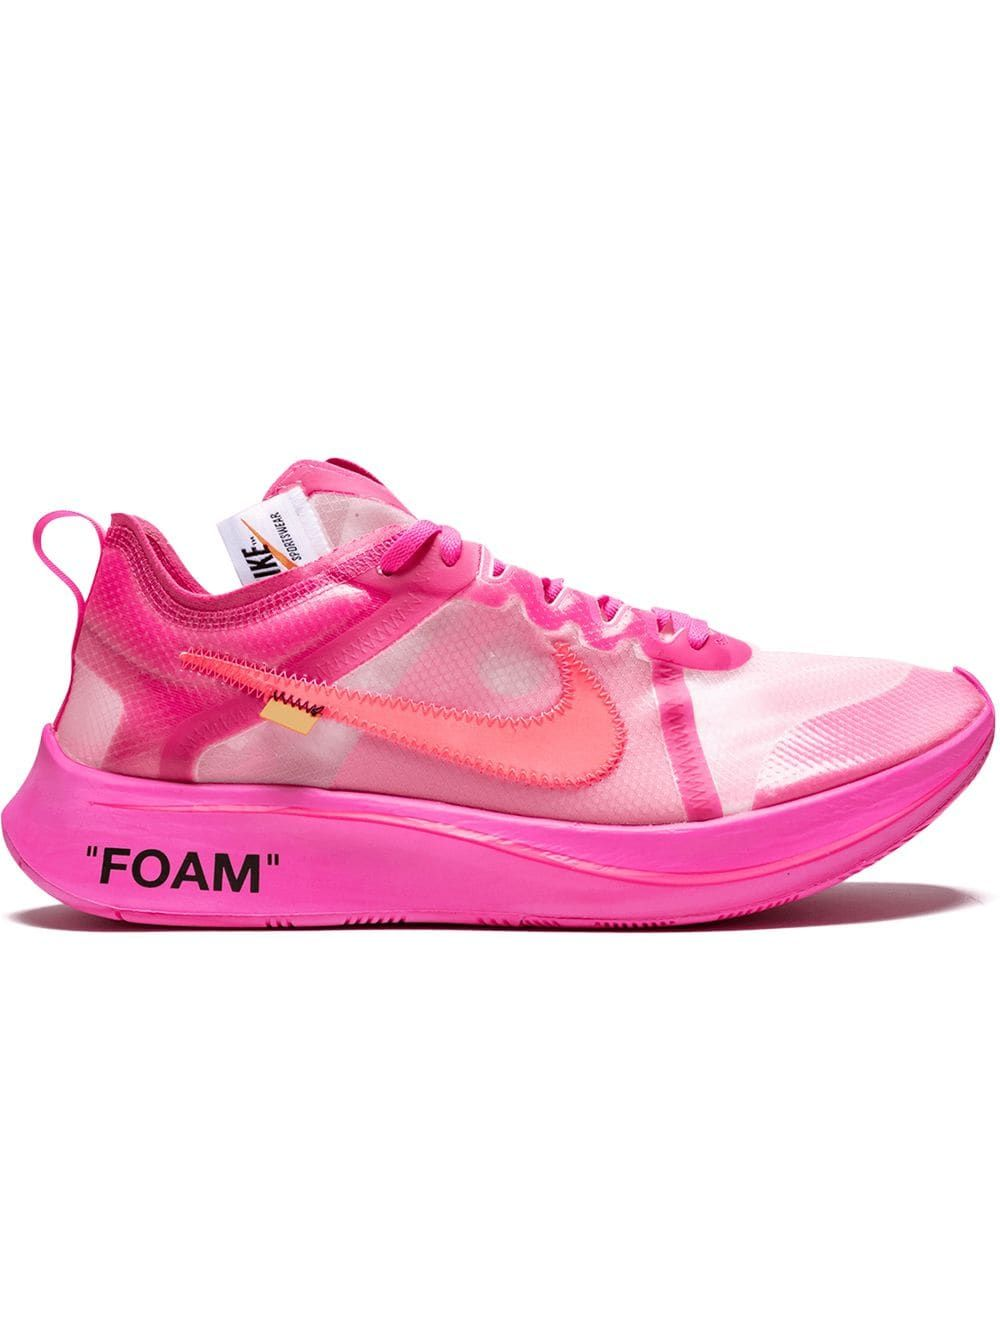 634 Best Basket ball shoes images | Shoes, Basketball shoes